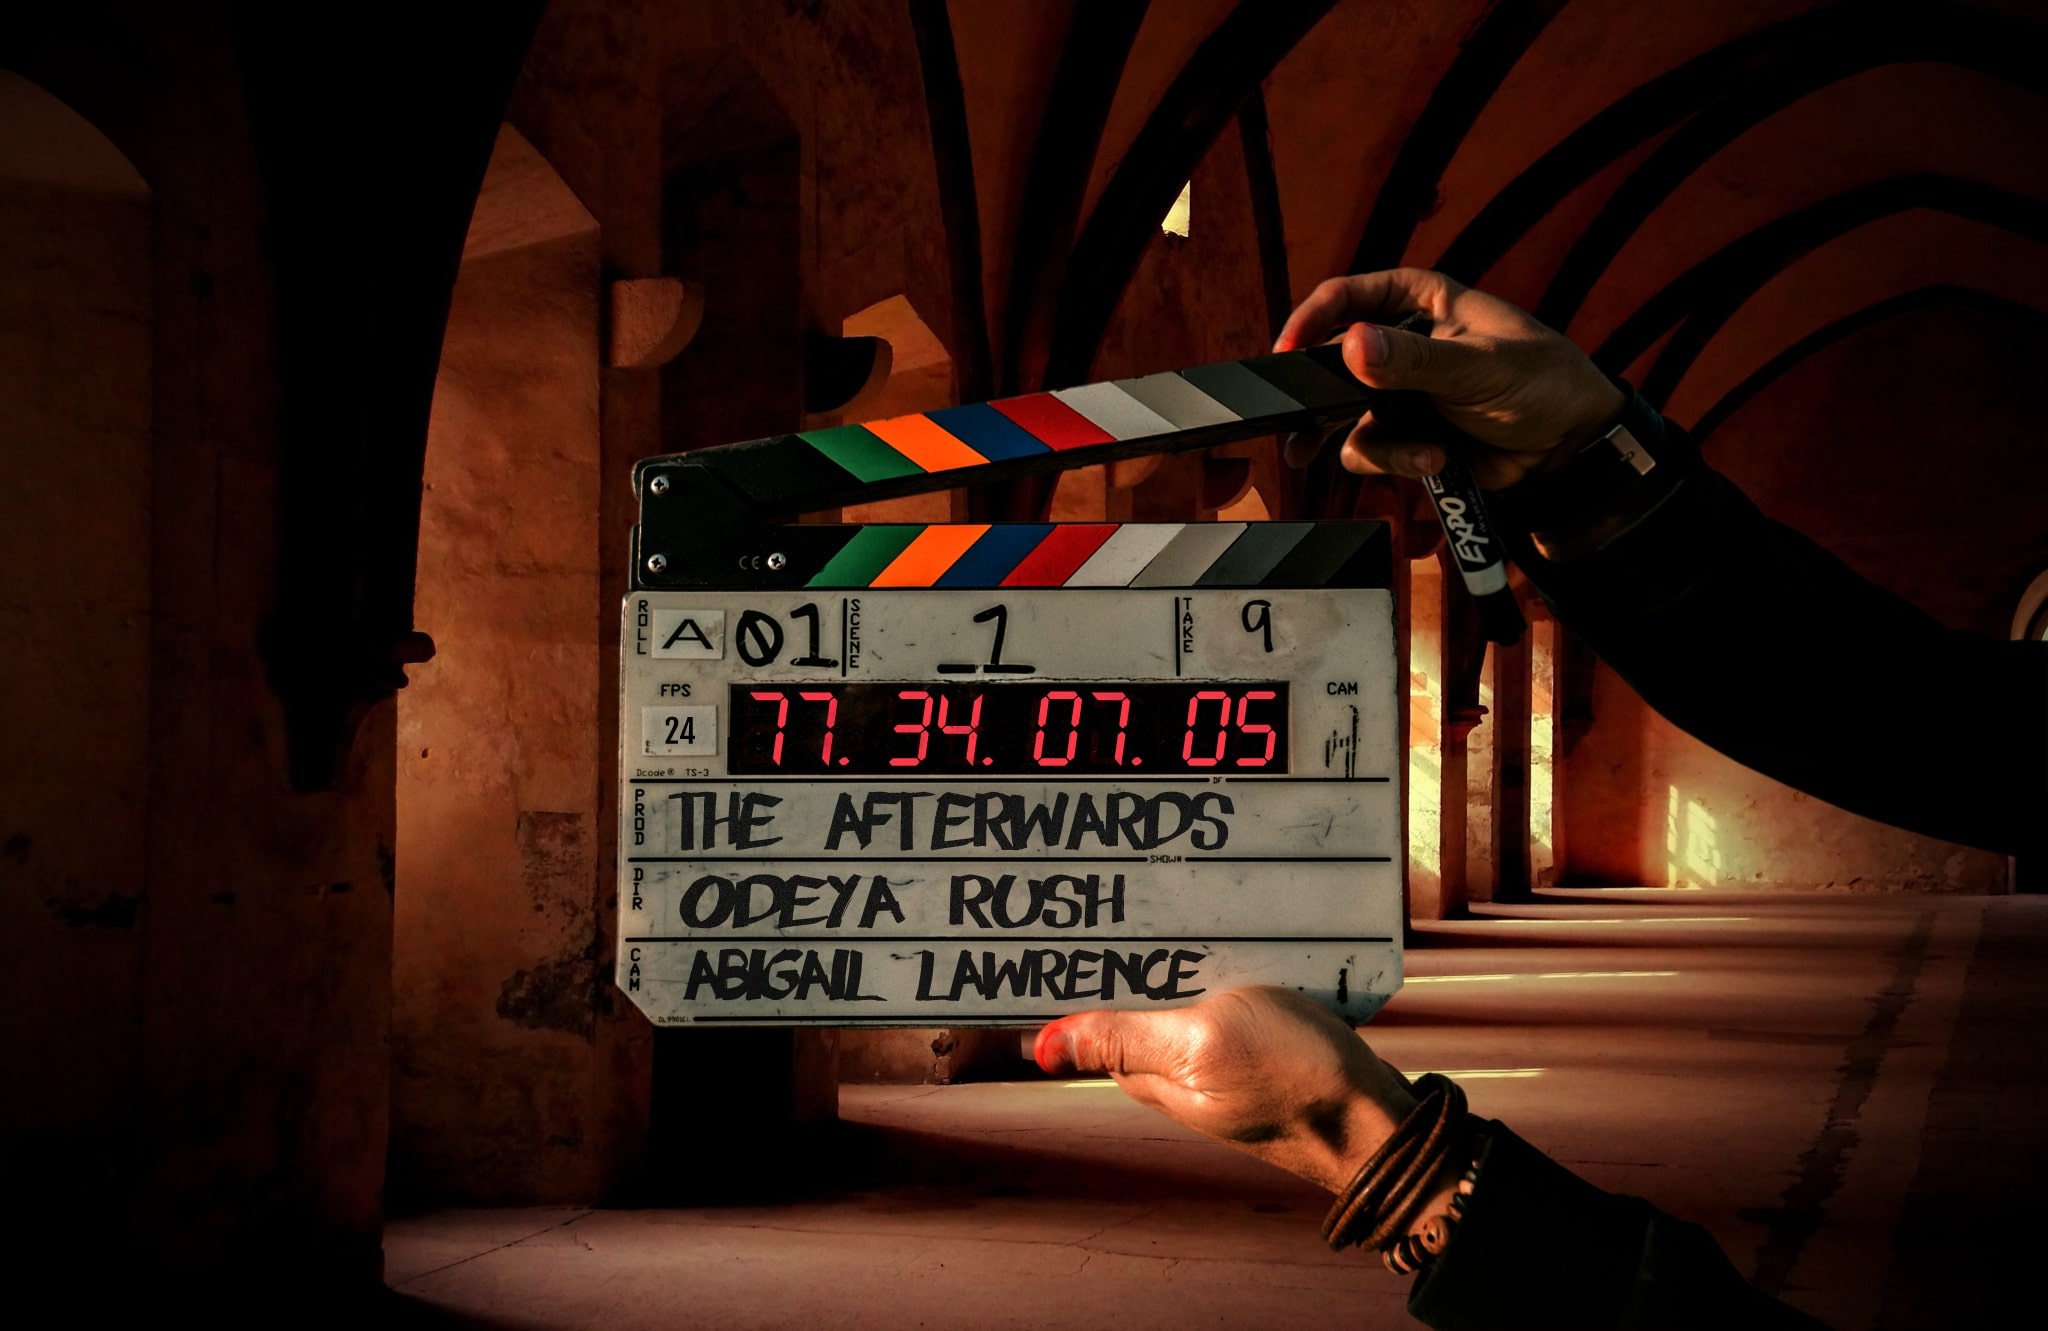 The Afterwards Television Series. On location Movie Slate